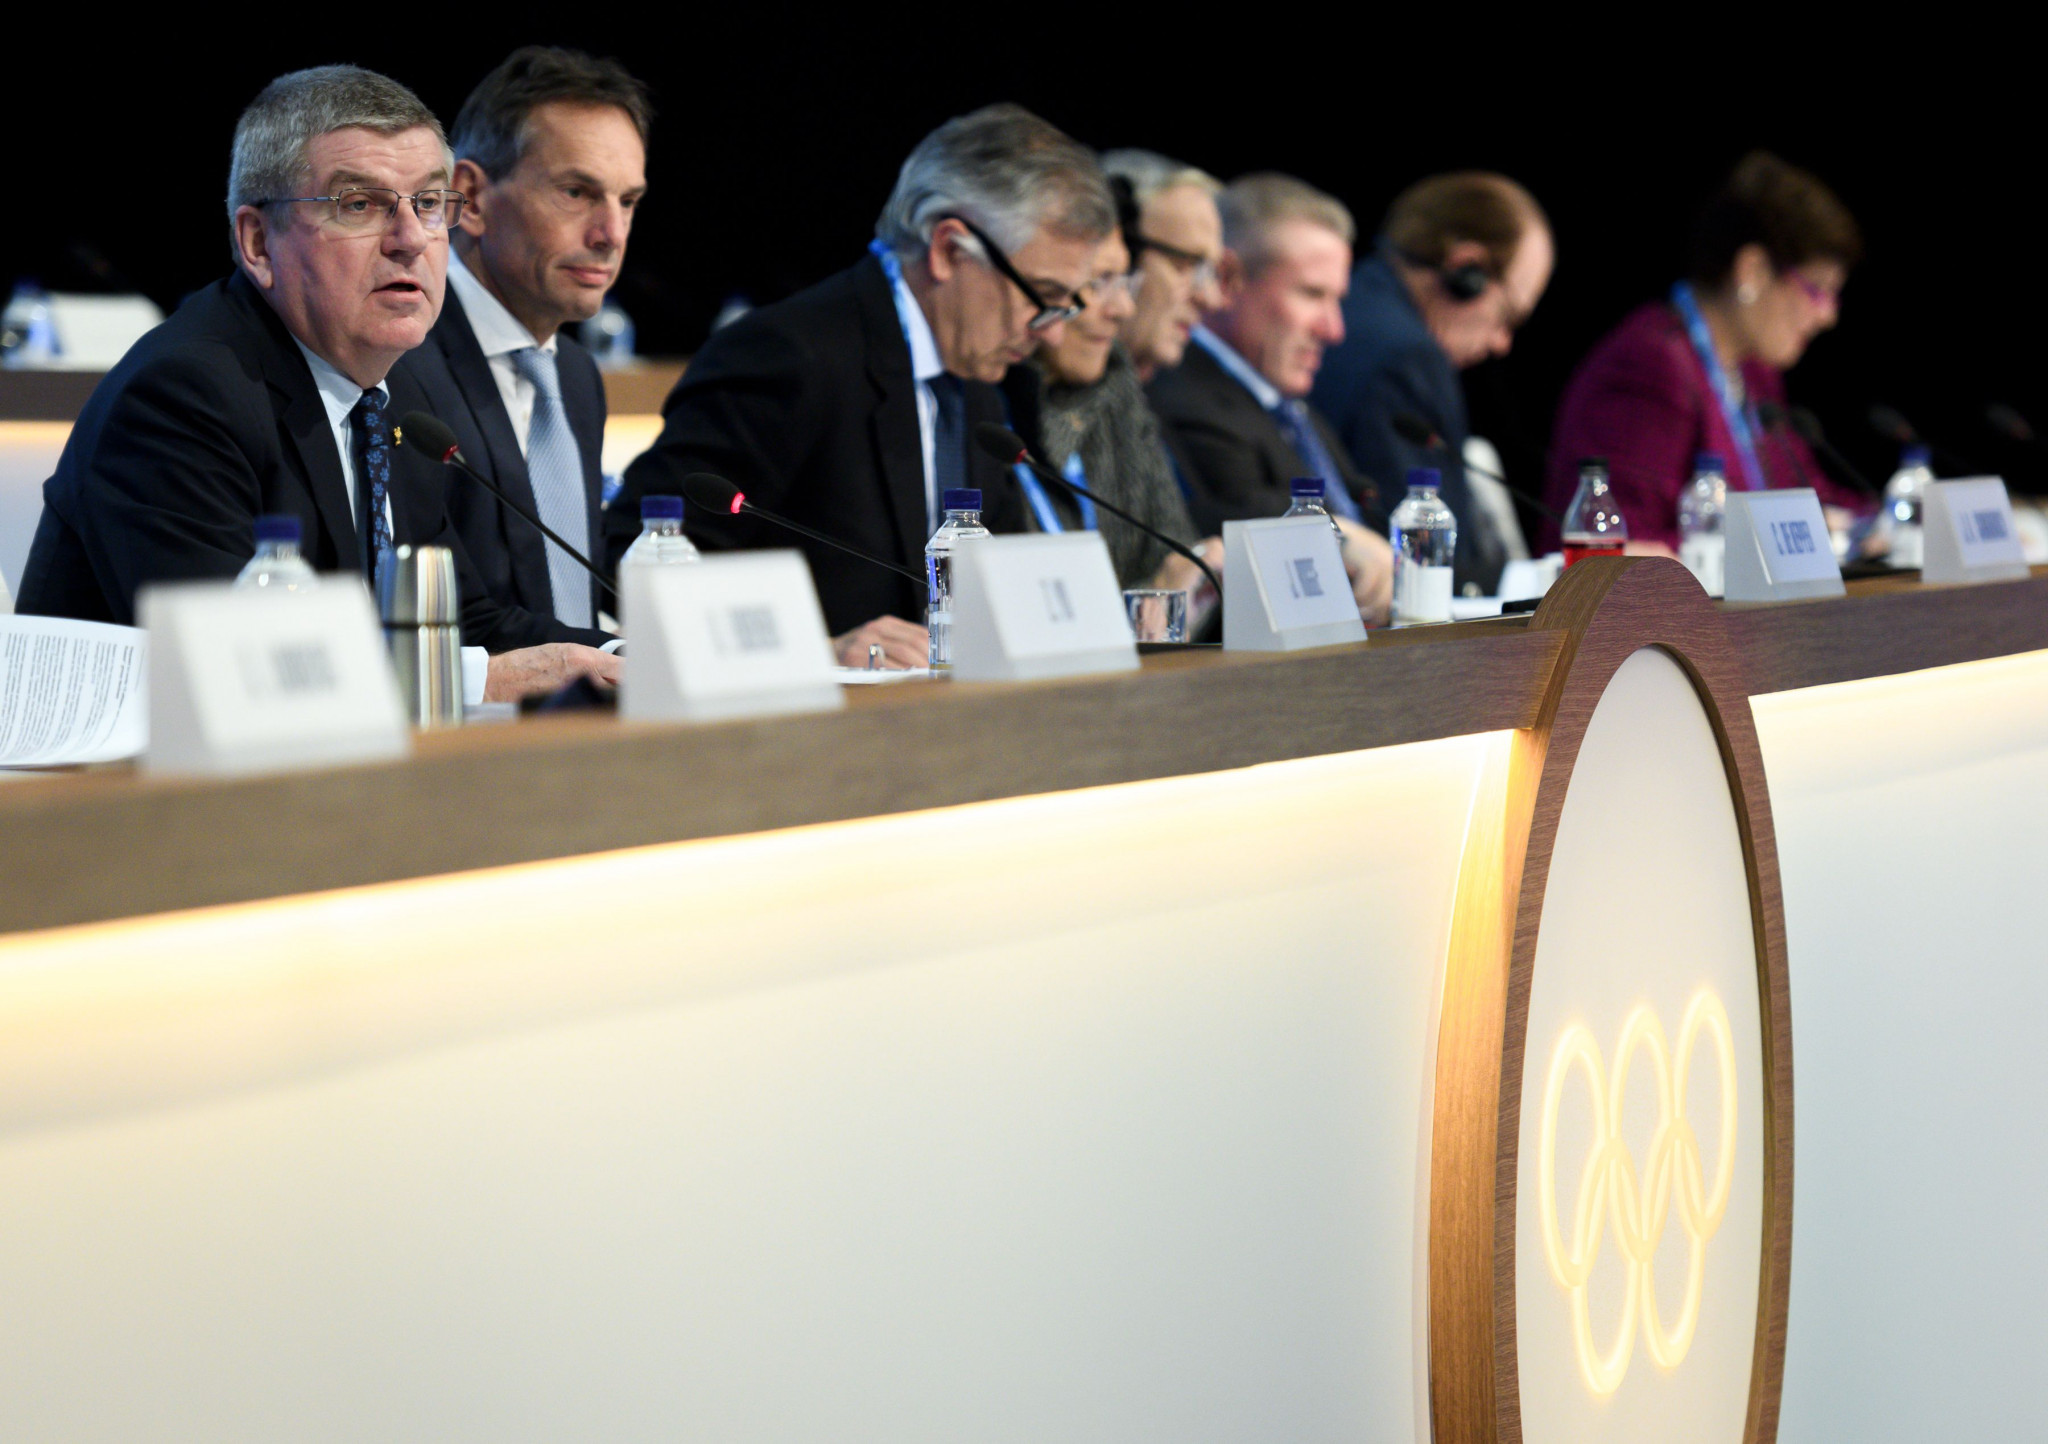 Exclusive: IOC Session to swear in new athlete representatives in doubt as members leave Pyeongchang 2018 early